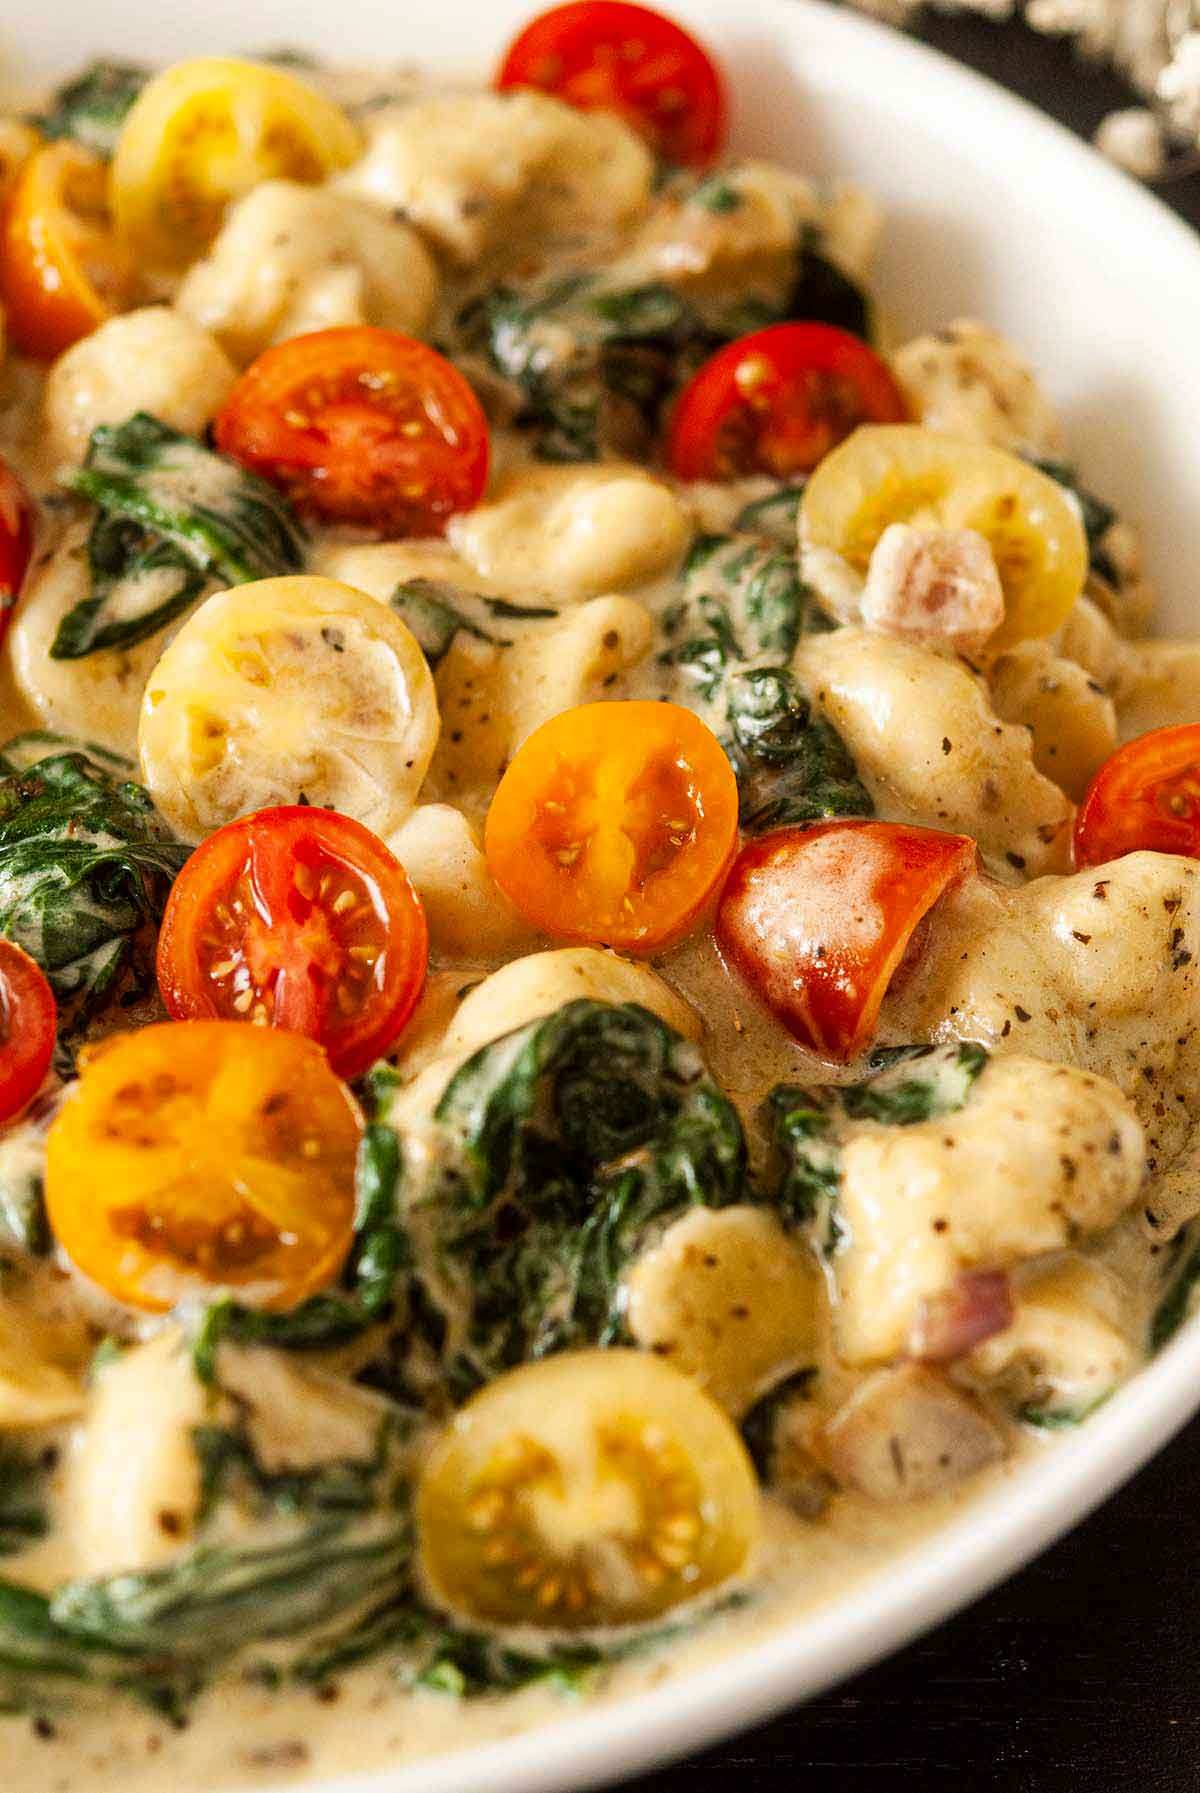 A bowl of colorful gnocchi with tomatoes and spinach in a bowl.